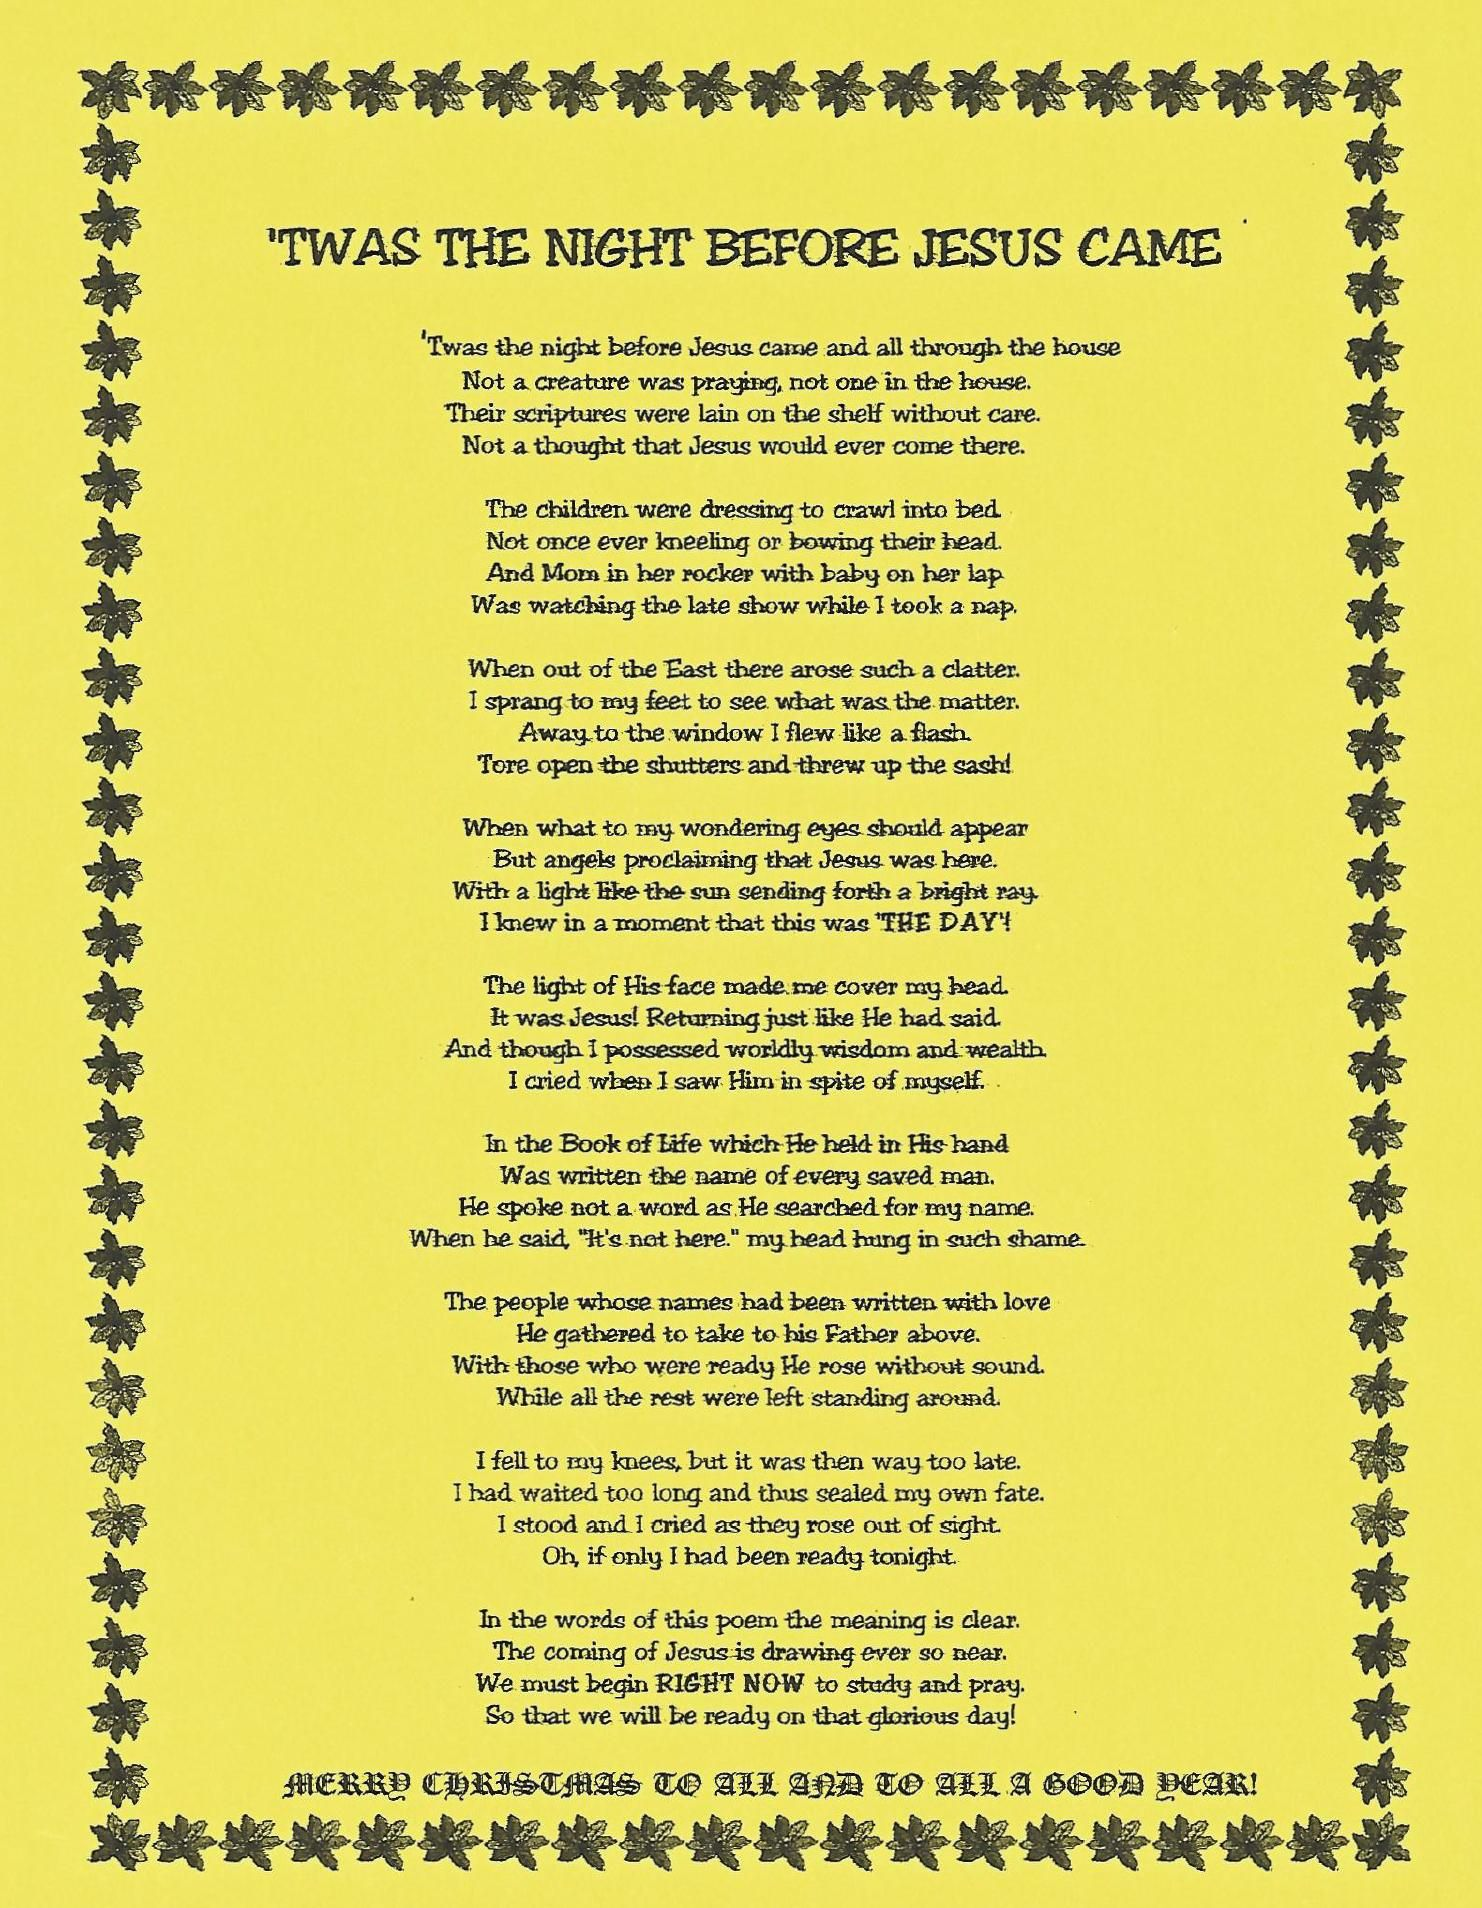 photograph about Twas the Night Before Jesus Came Printable named Twas The Night time In advance of Jesus Arrived Xmas ~ What does it